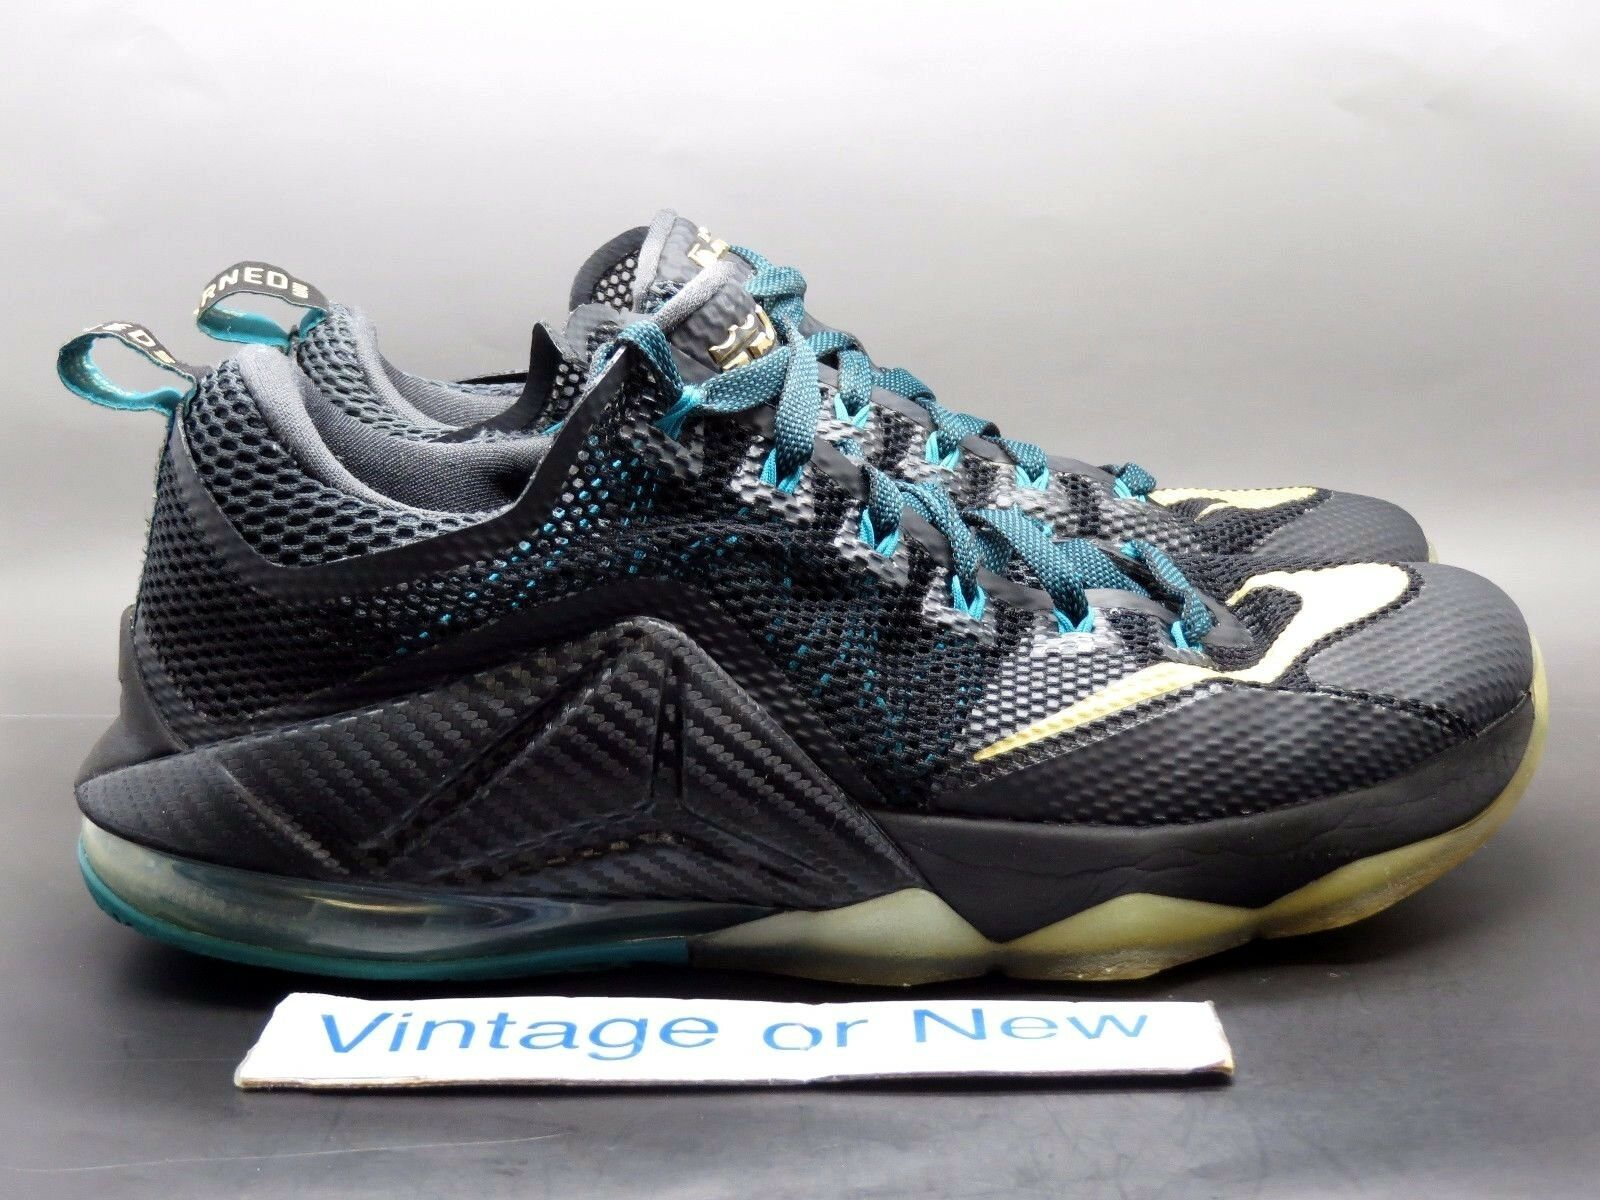 Casual wild Nike LeBron XII 12 Low SVSM Black Gold Anthracite Emerald Price reduction